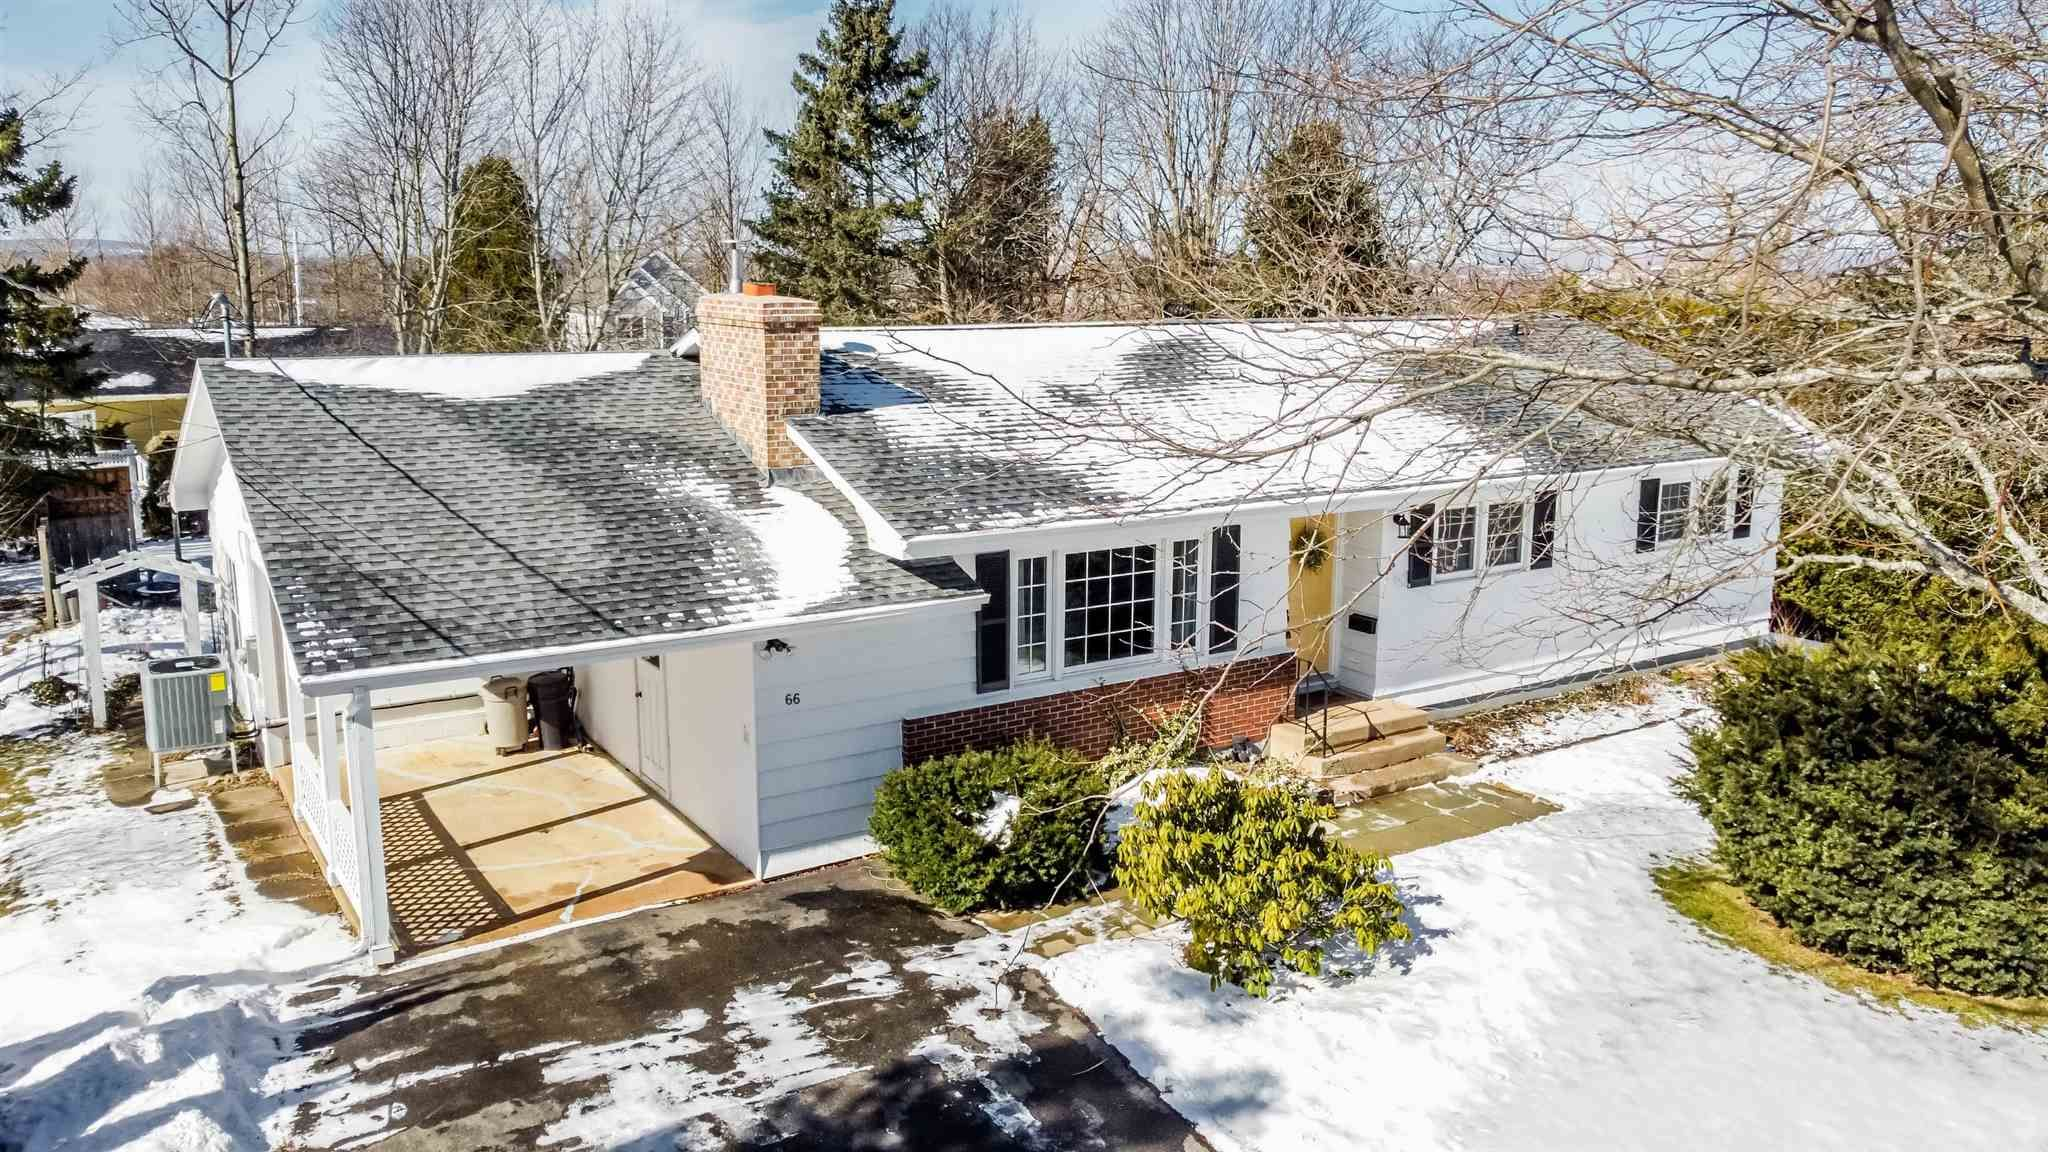 Main Photo: 66 Chestnut Avenue in Wolfville: 404-Kings County Residential for sale (Annapolis Valley)  : MLS®# 202103928